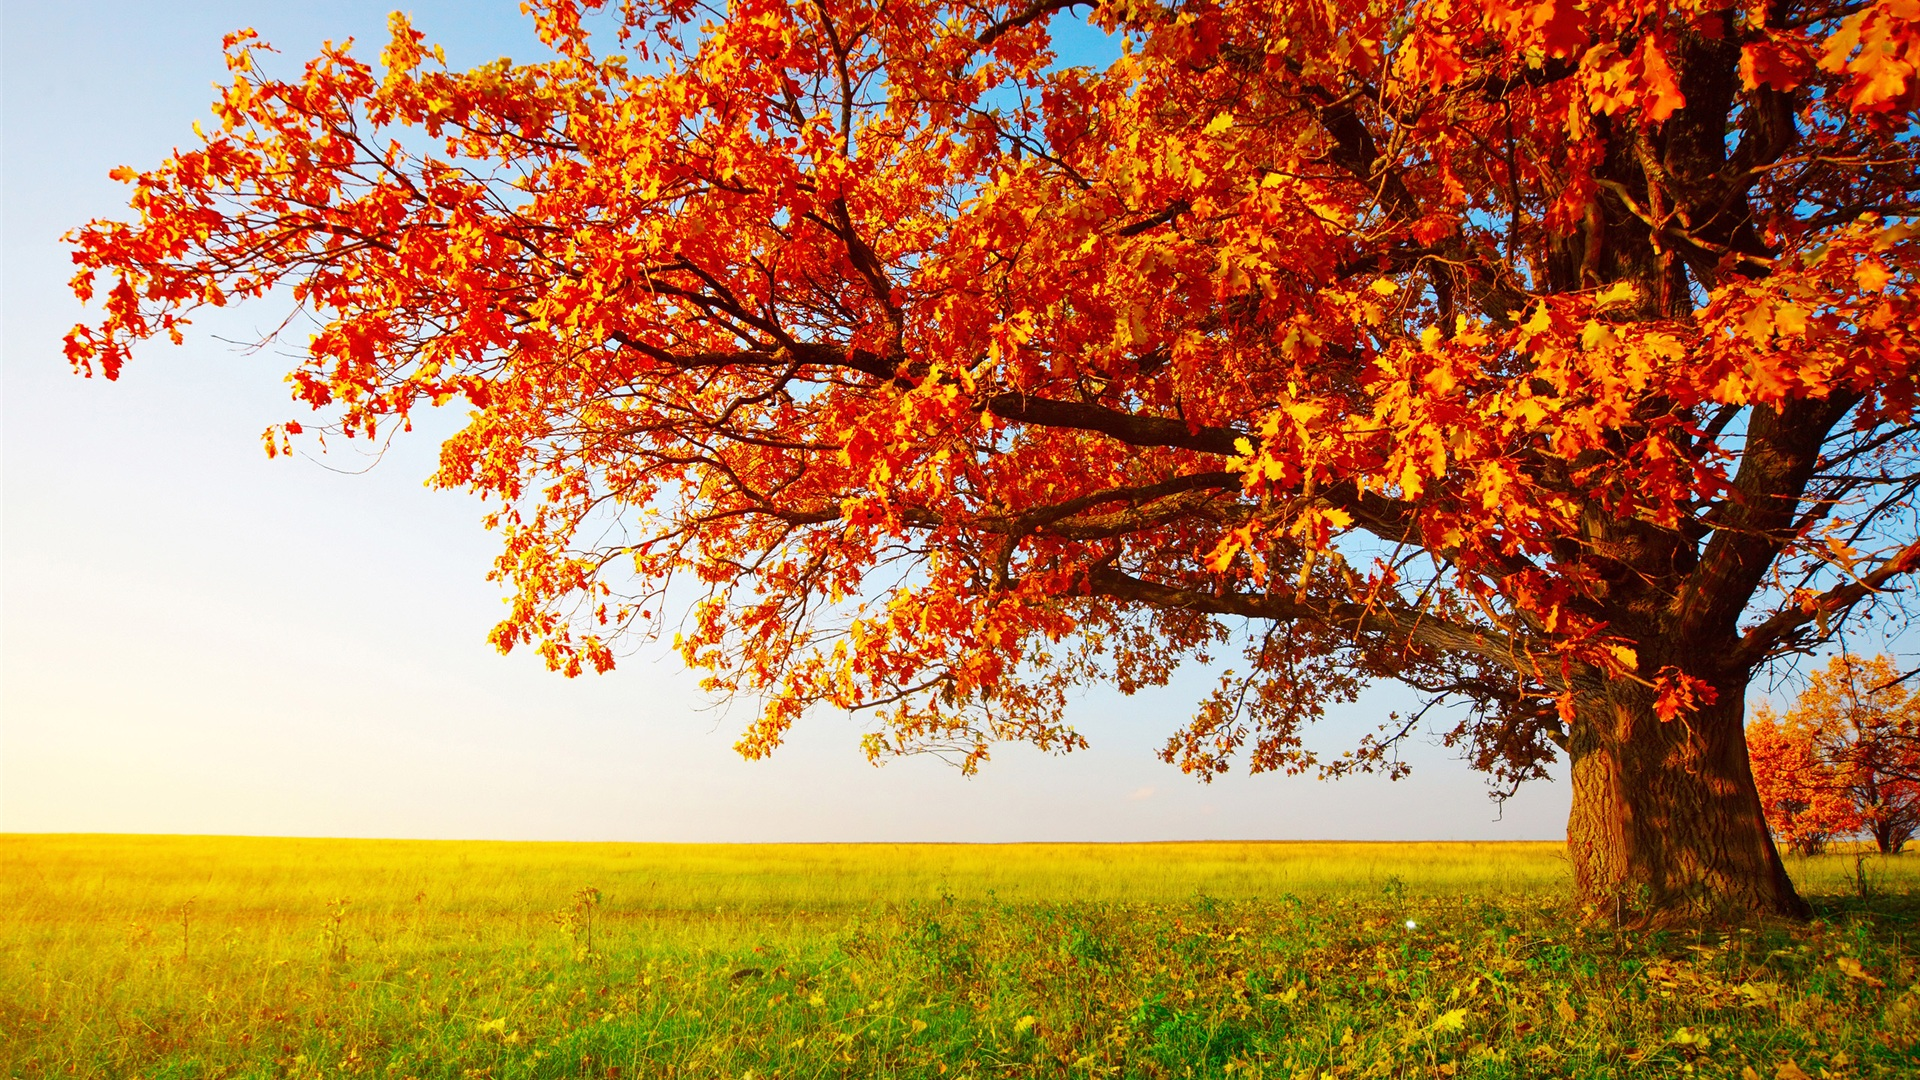 40 Autumn Wallpaper Backgrounds For Free Hd Download